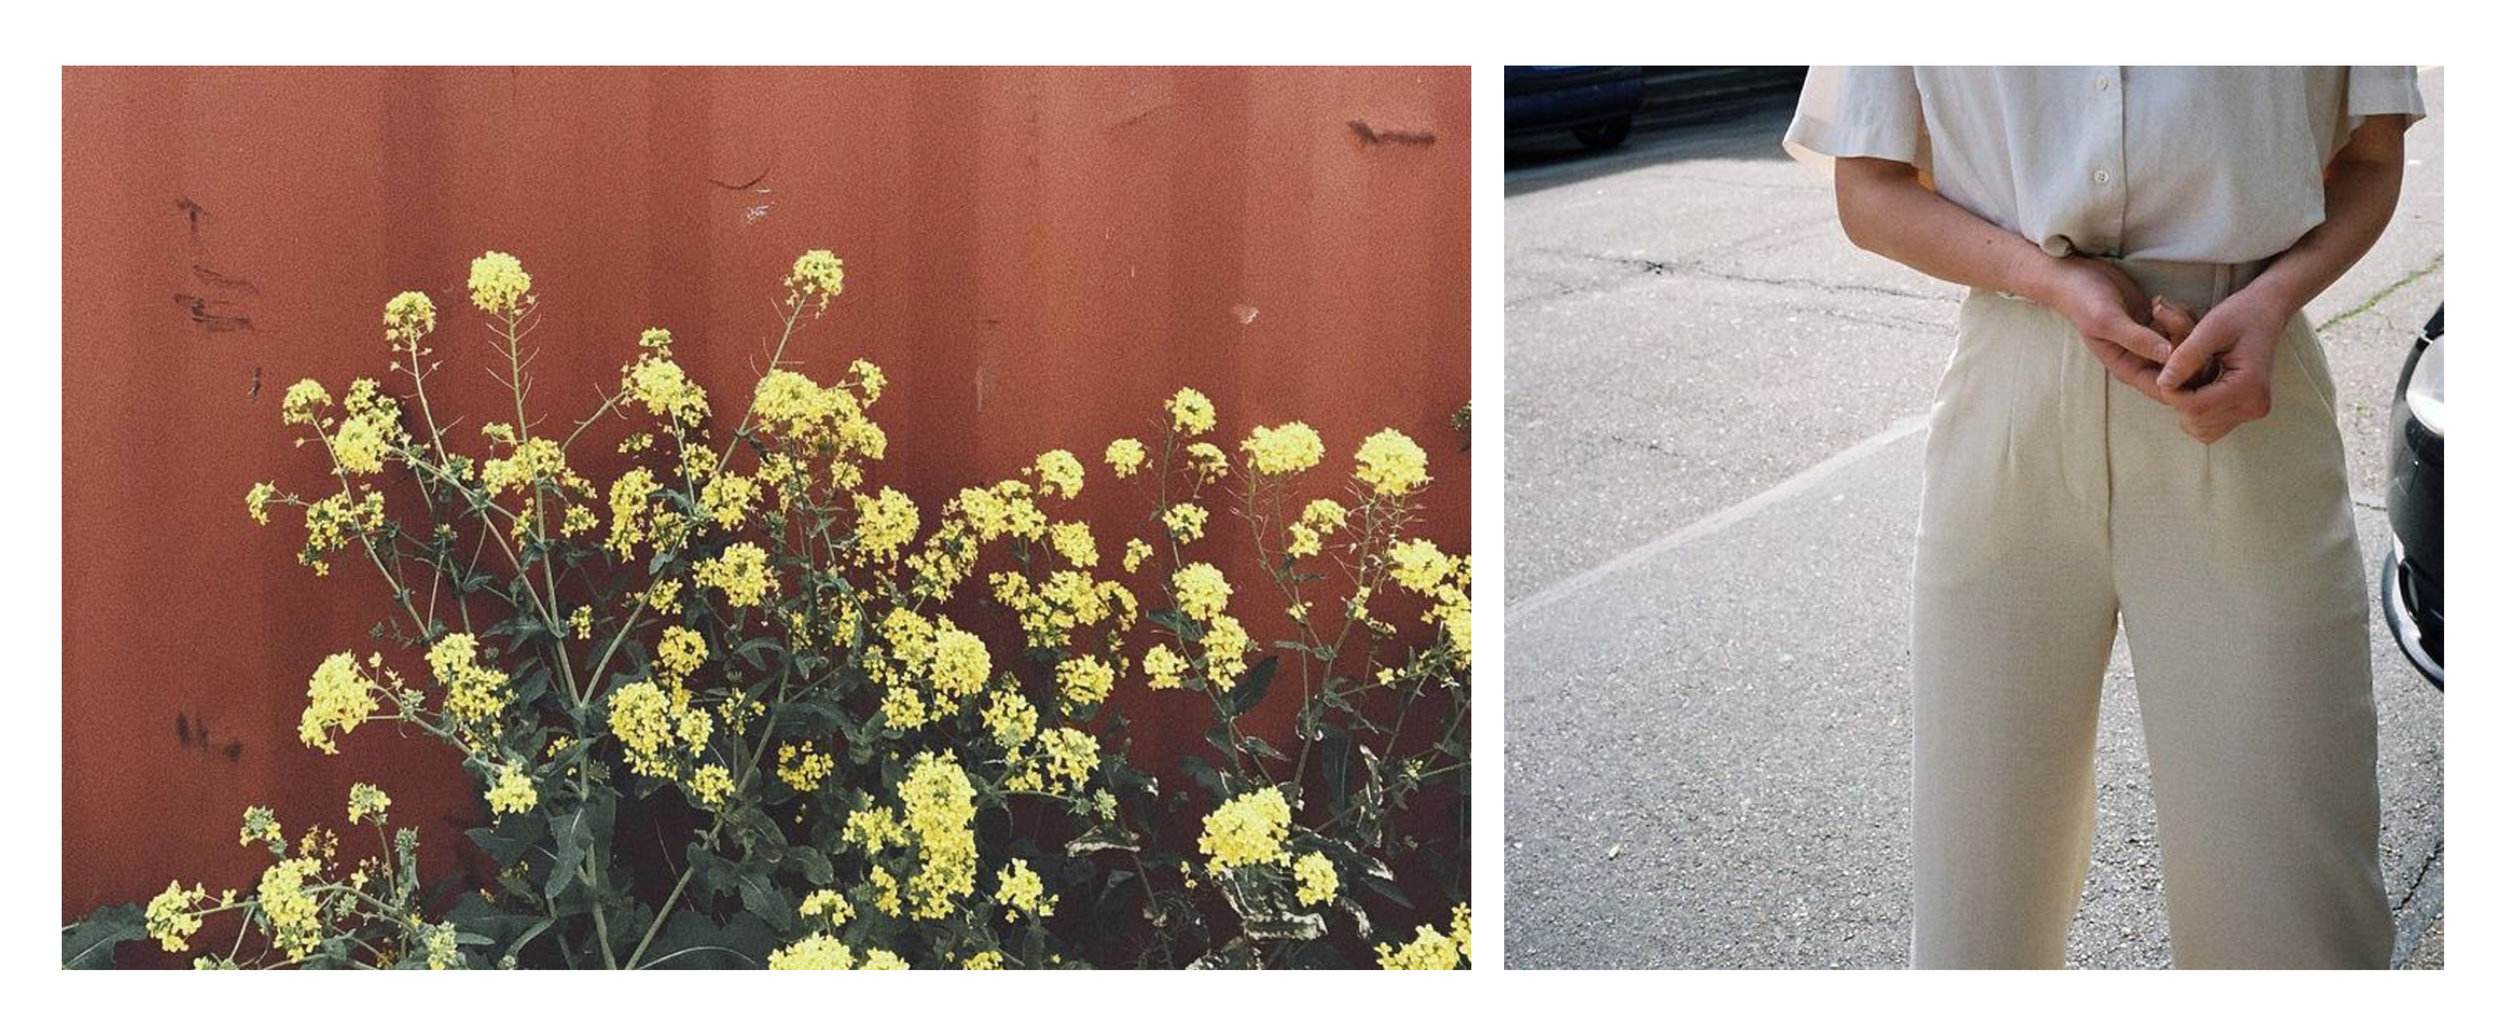 Picture Left - taken in Cononley of the weeds growing beside an old steel shipment container, right image via Pinterest